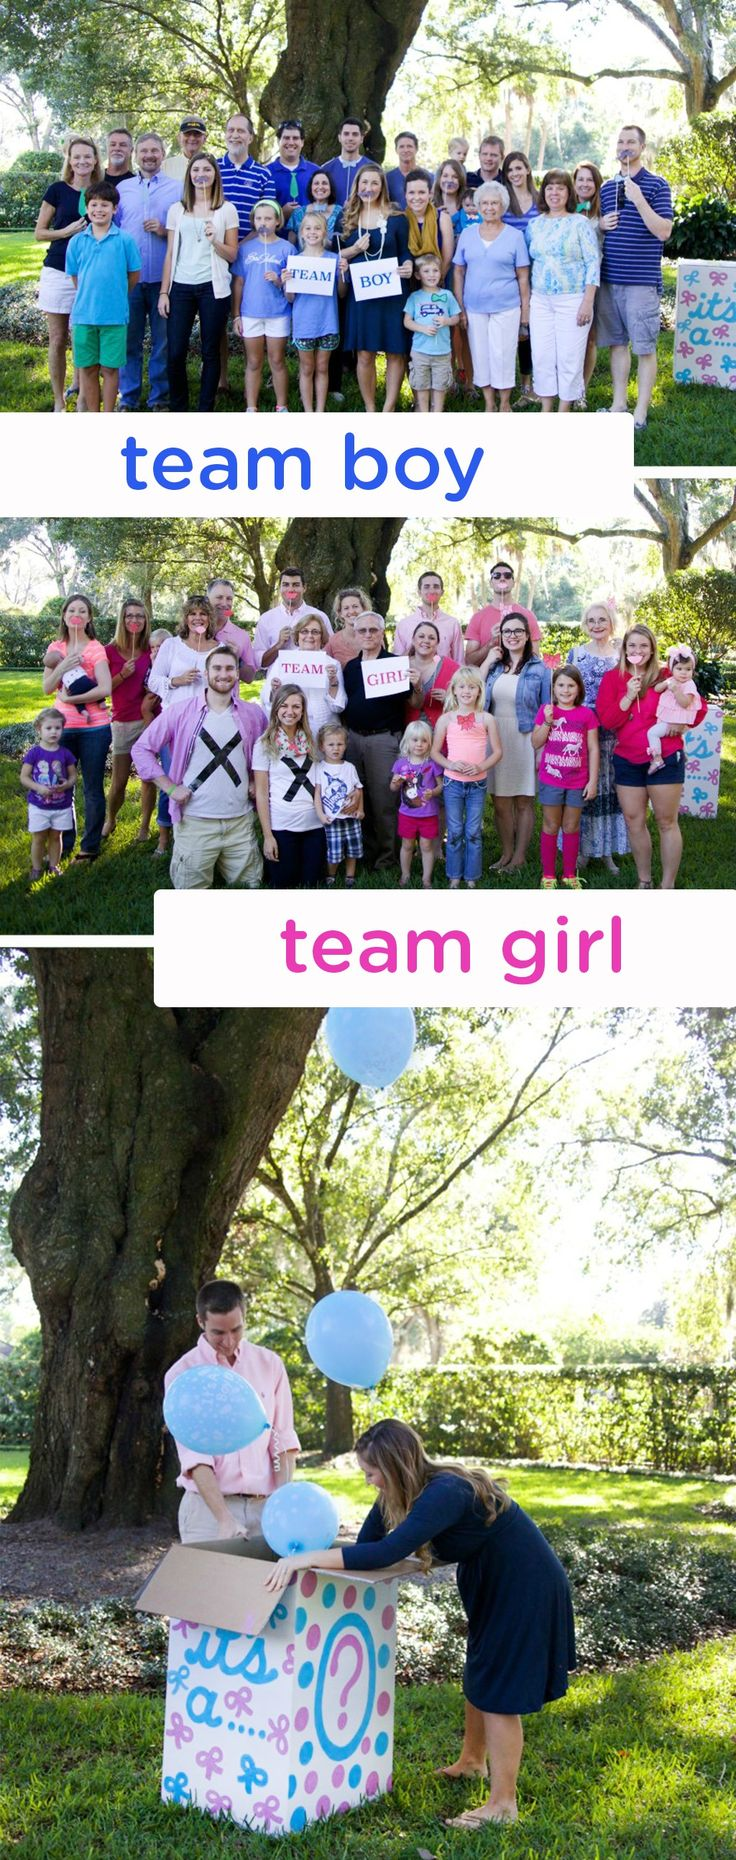 This simple, creative, and fun gender reveal party idea gets everyone in on the excitement. Have party guests dress up in pink or blue, based on their guess, and tally up the votes before surprising everyone with the big news!